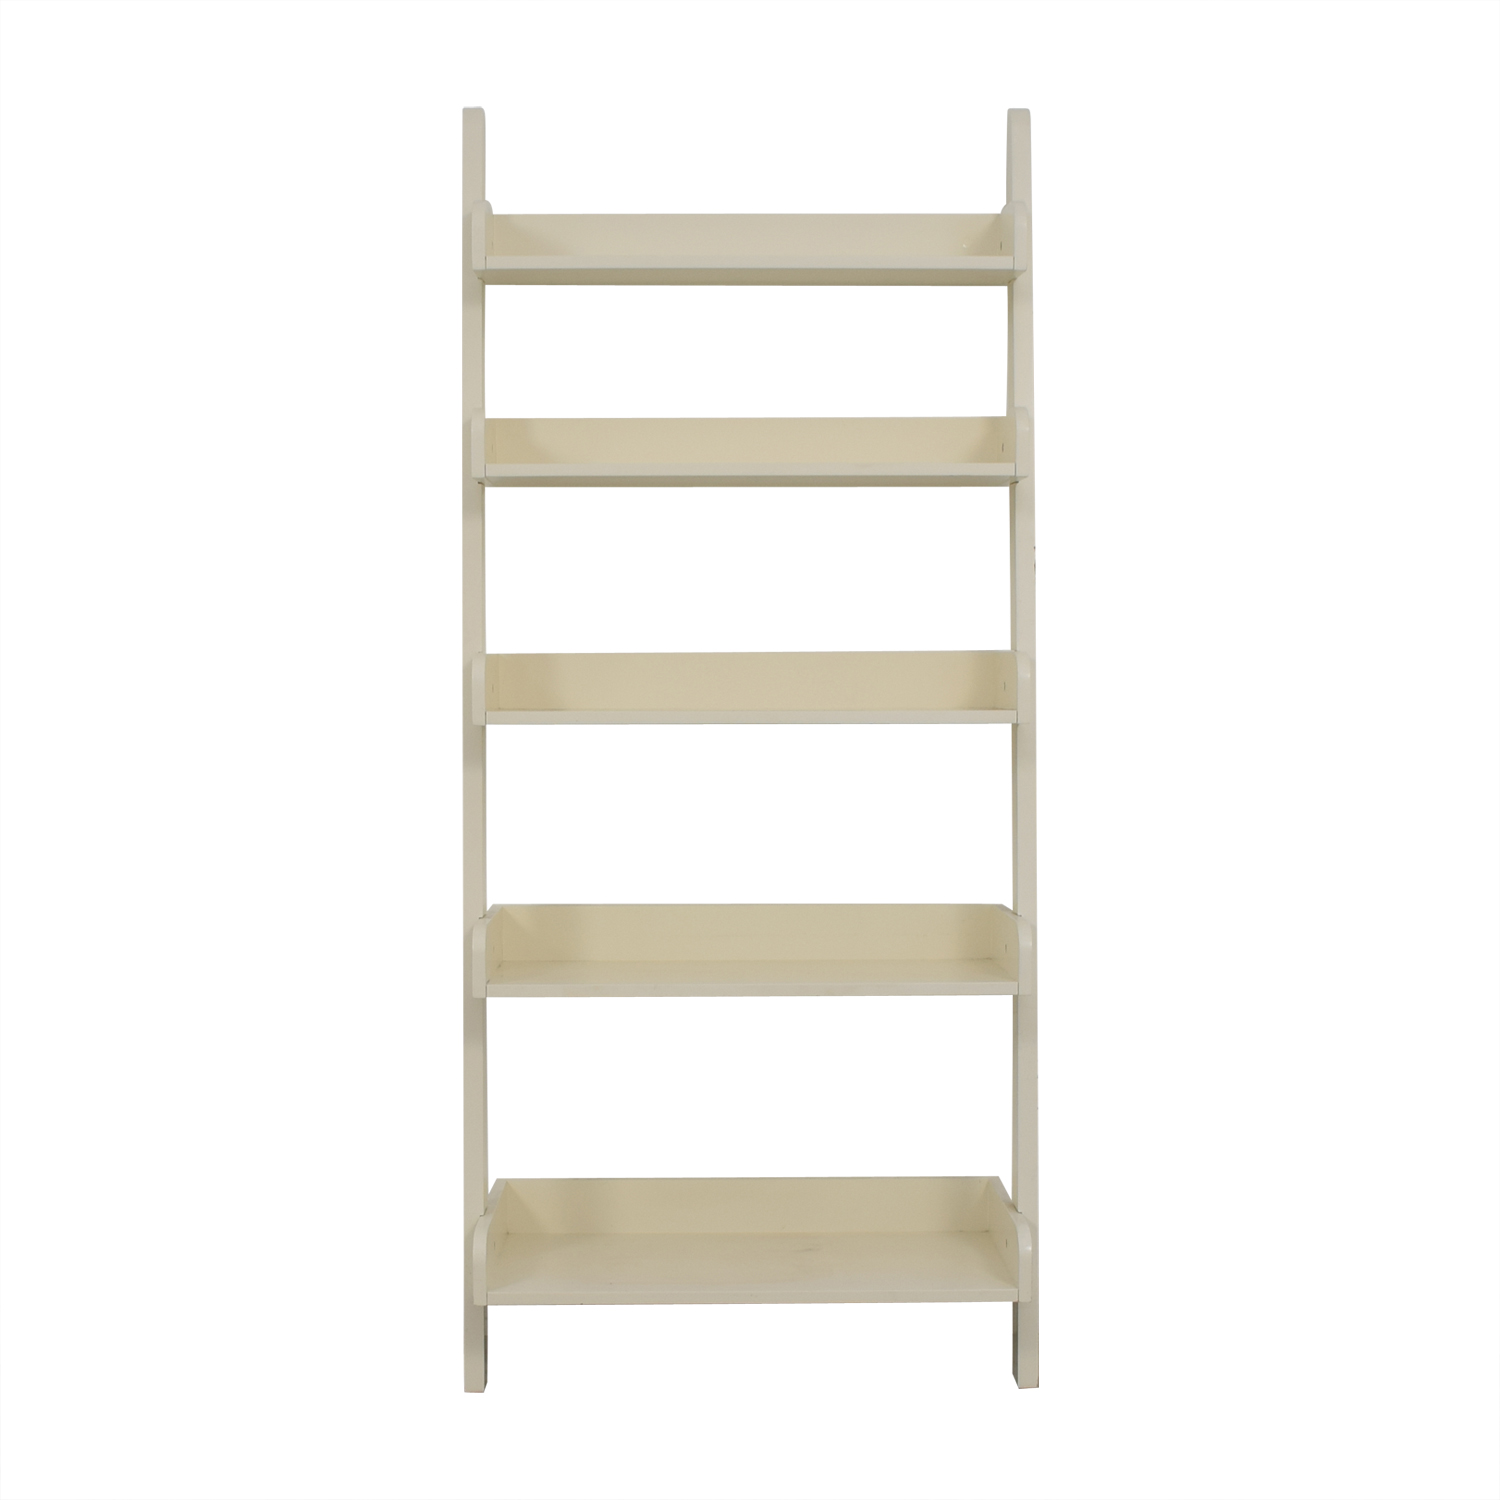 White Leaning Bookshelf used